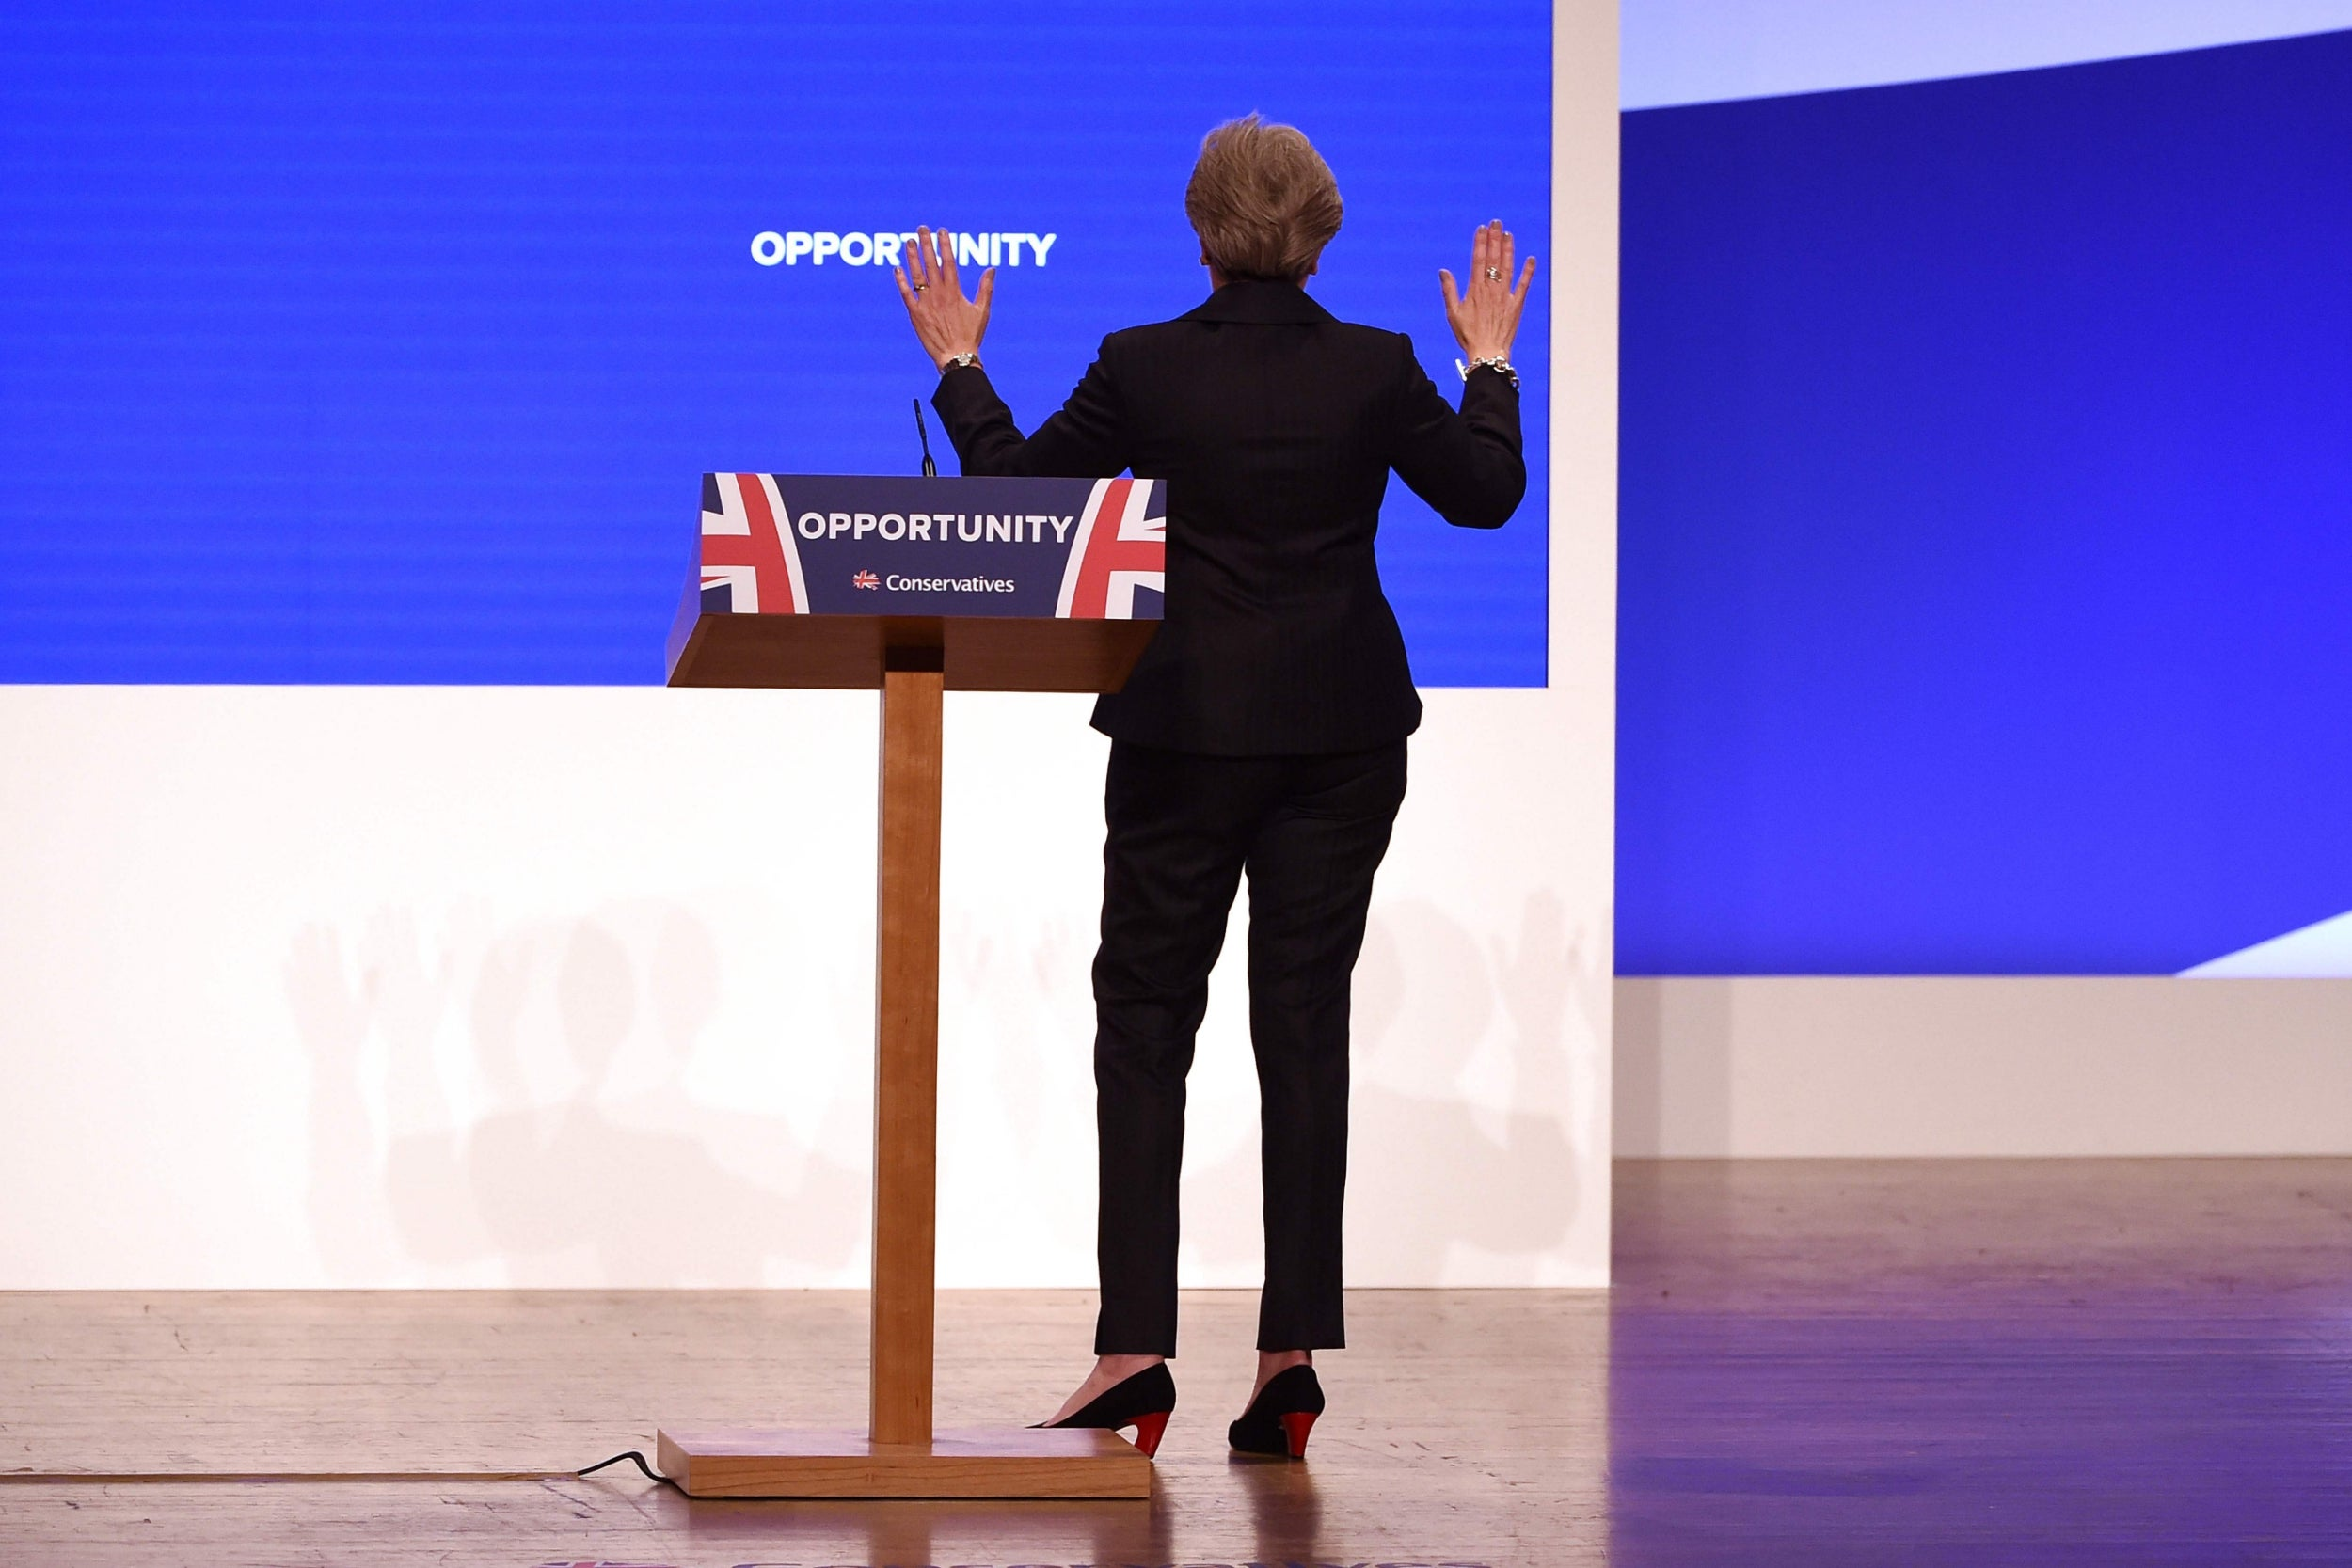 Theresa May dances on to stage for major conference speech